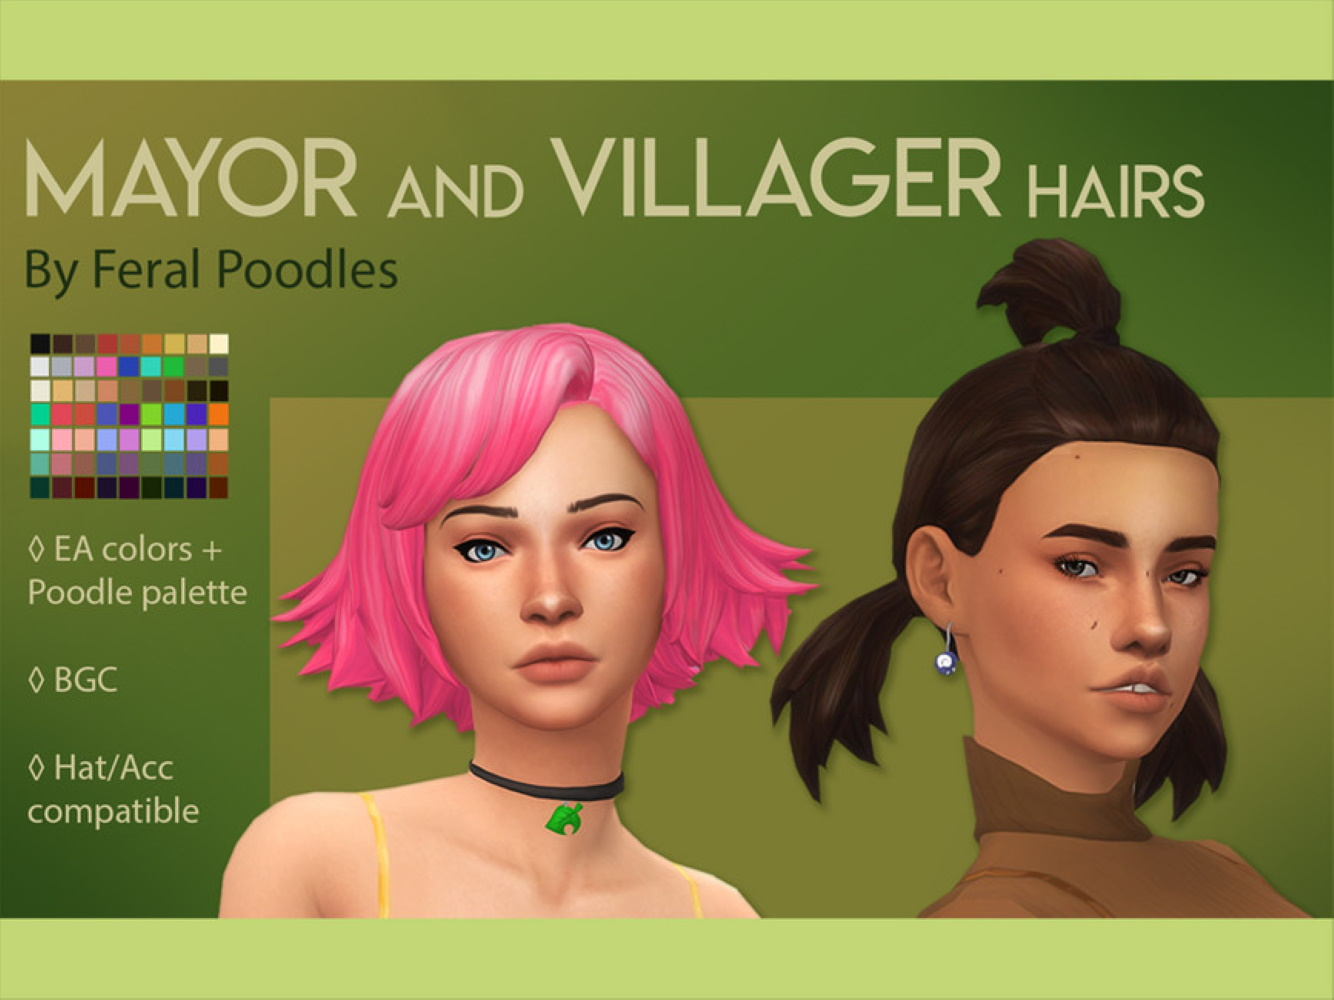 Brighten Up Your Sim With This Sims 4 Maxis Match Hair Cc